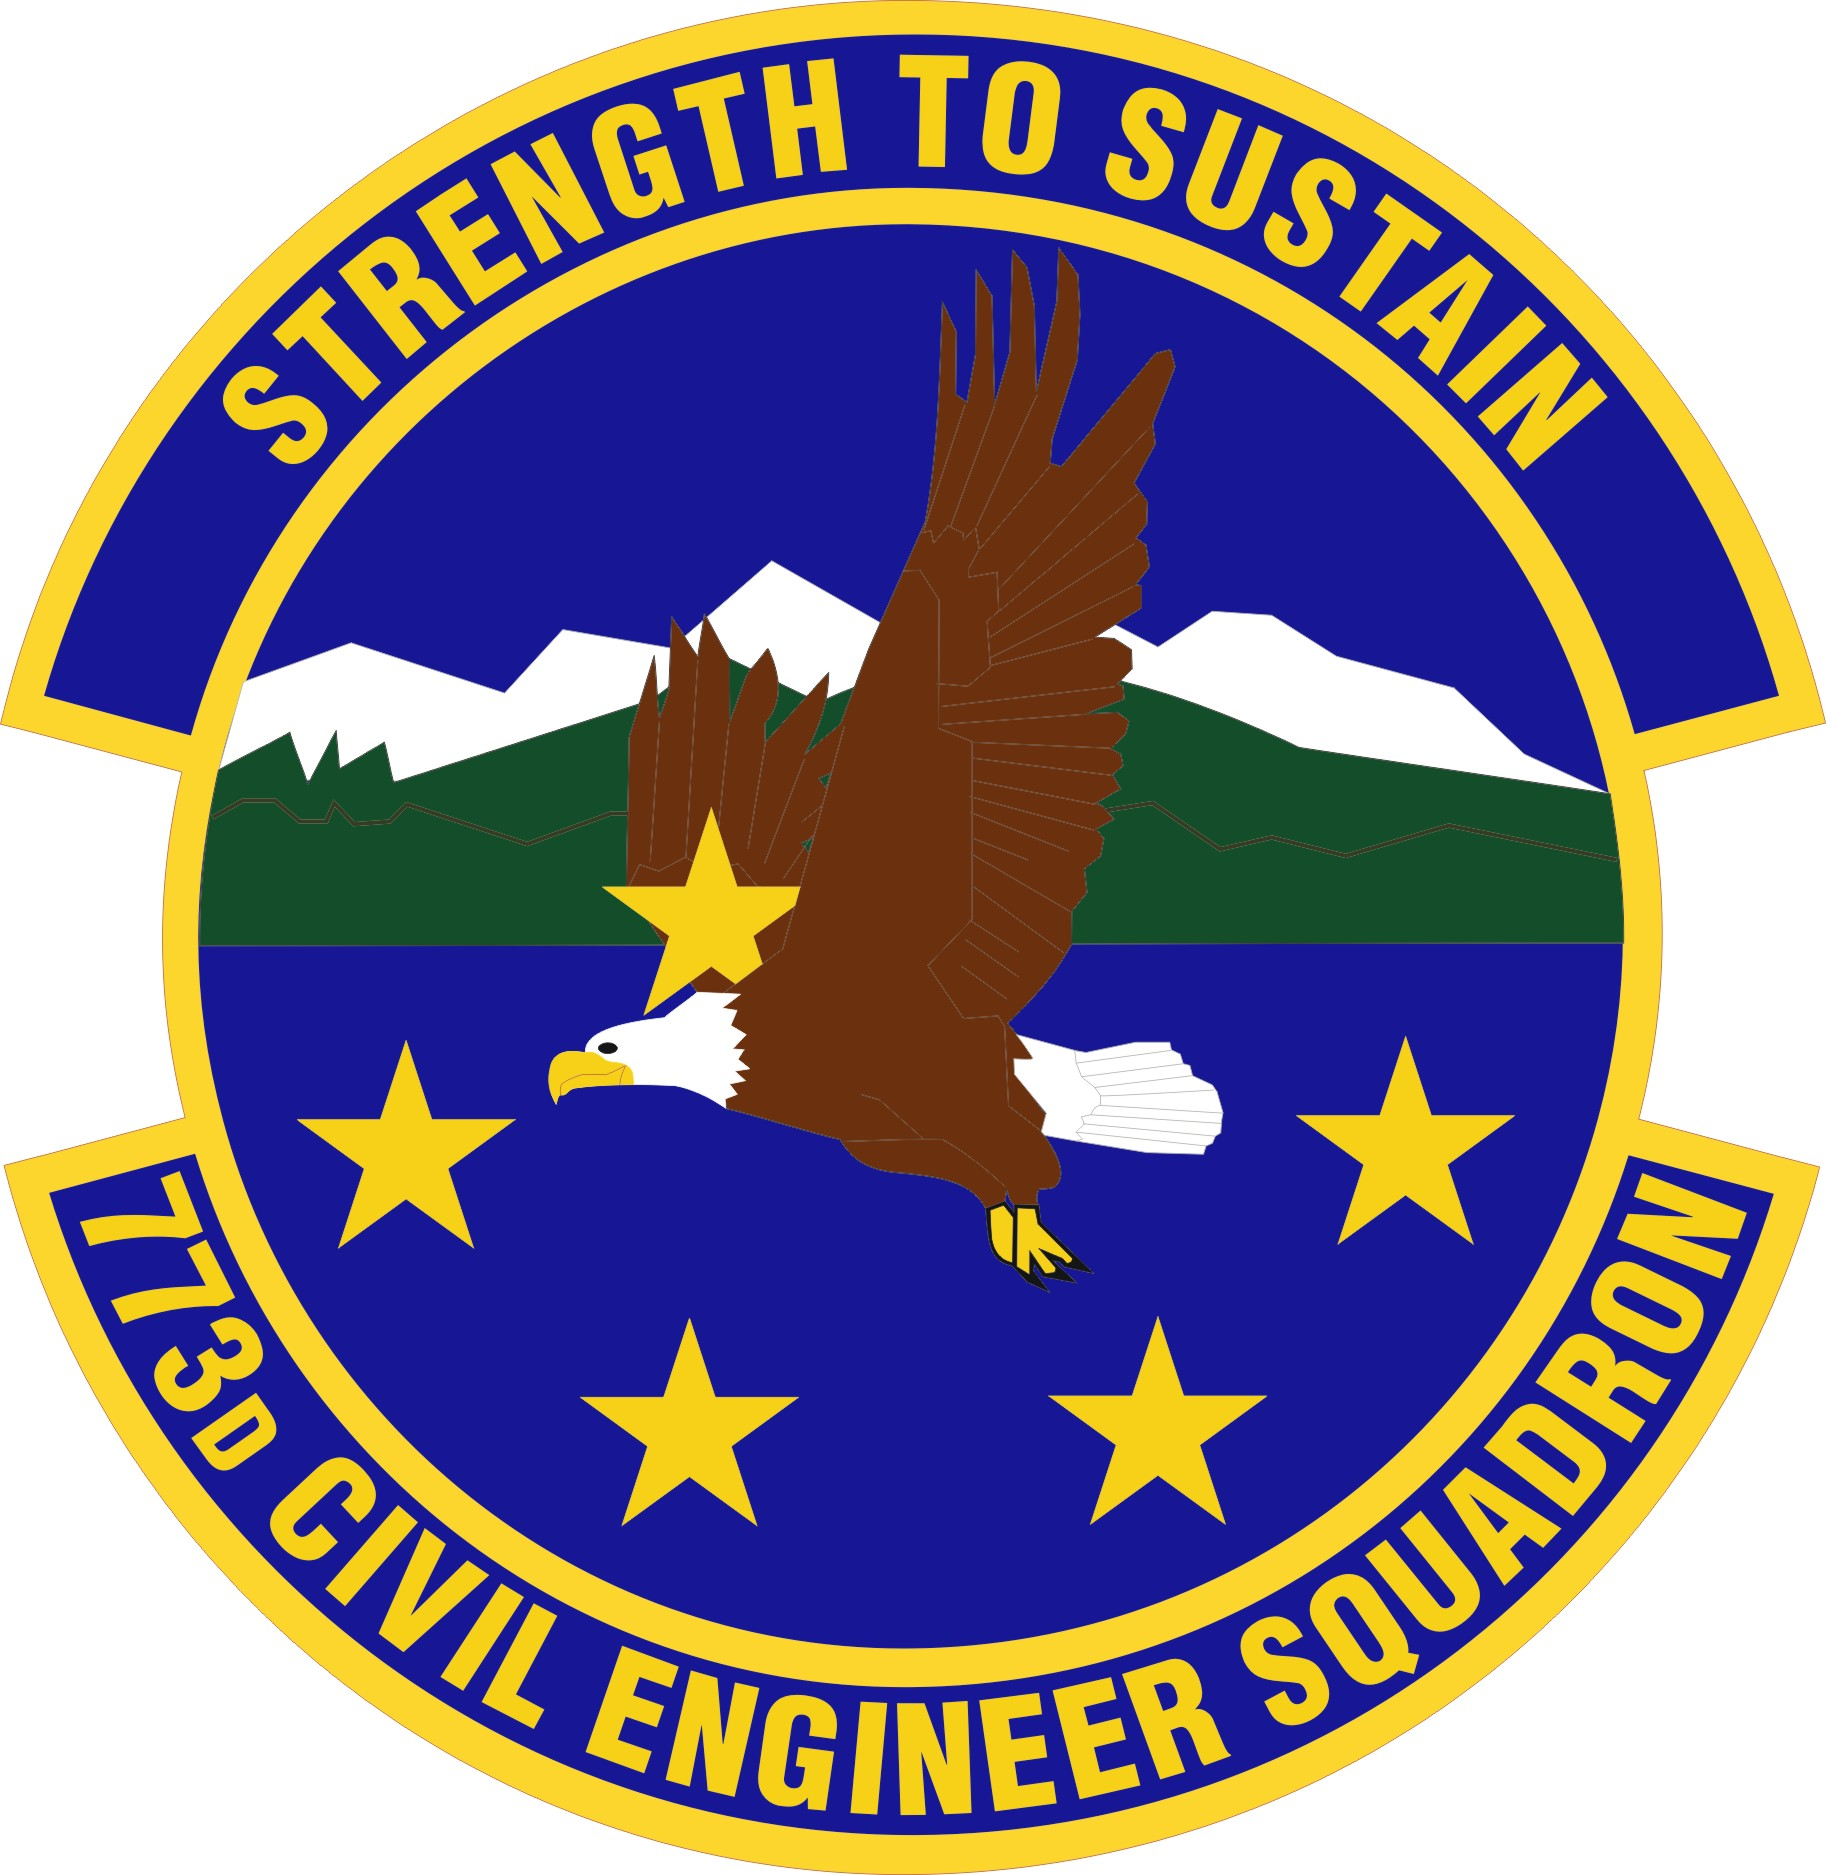 773 Civil Engineer Squadron (PACAF)